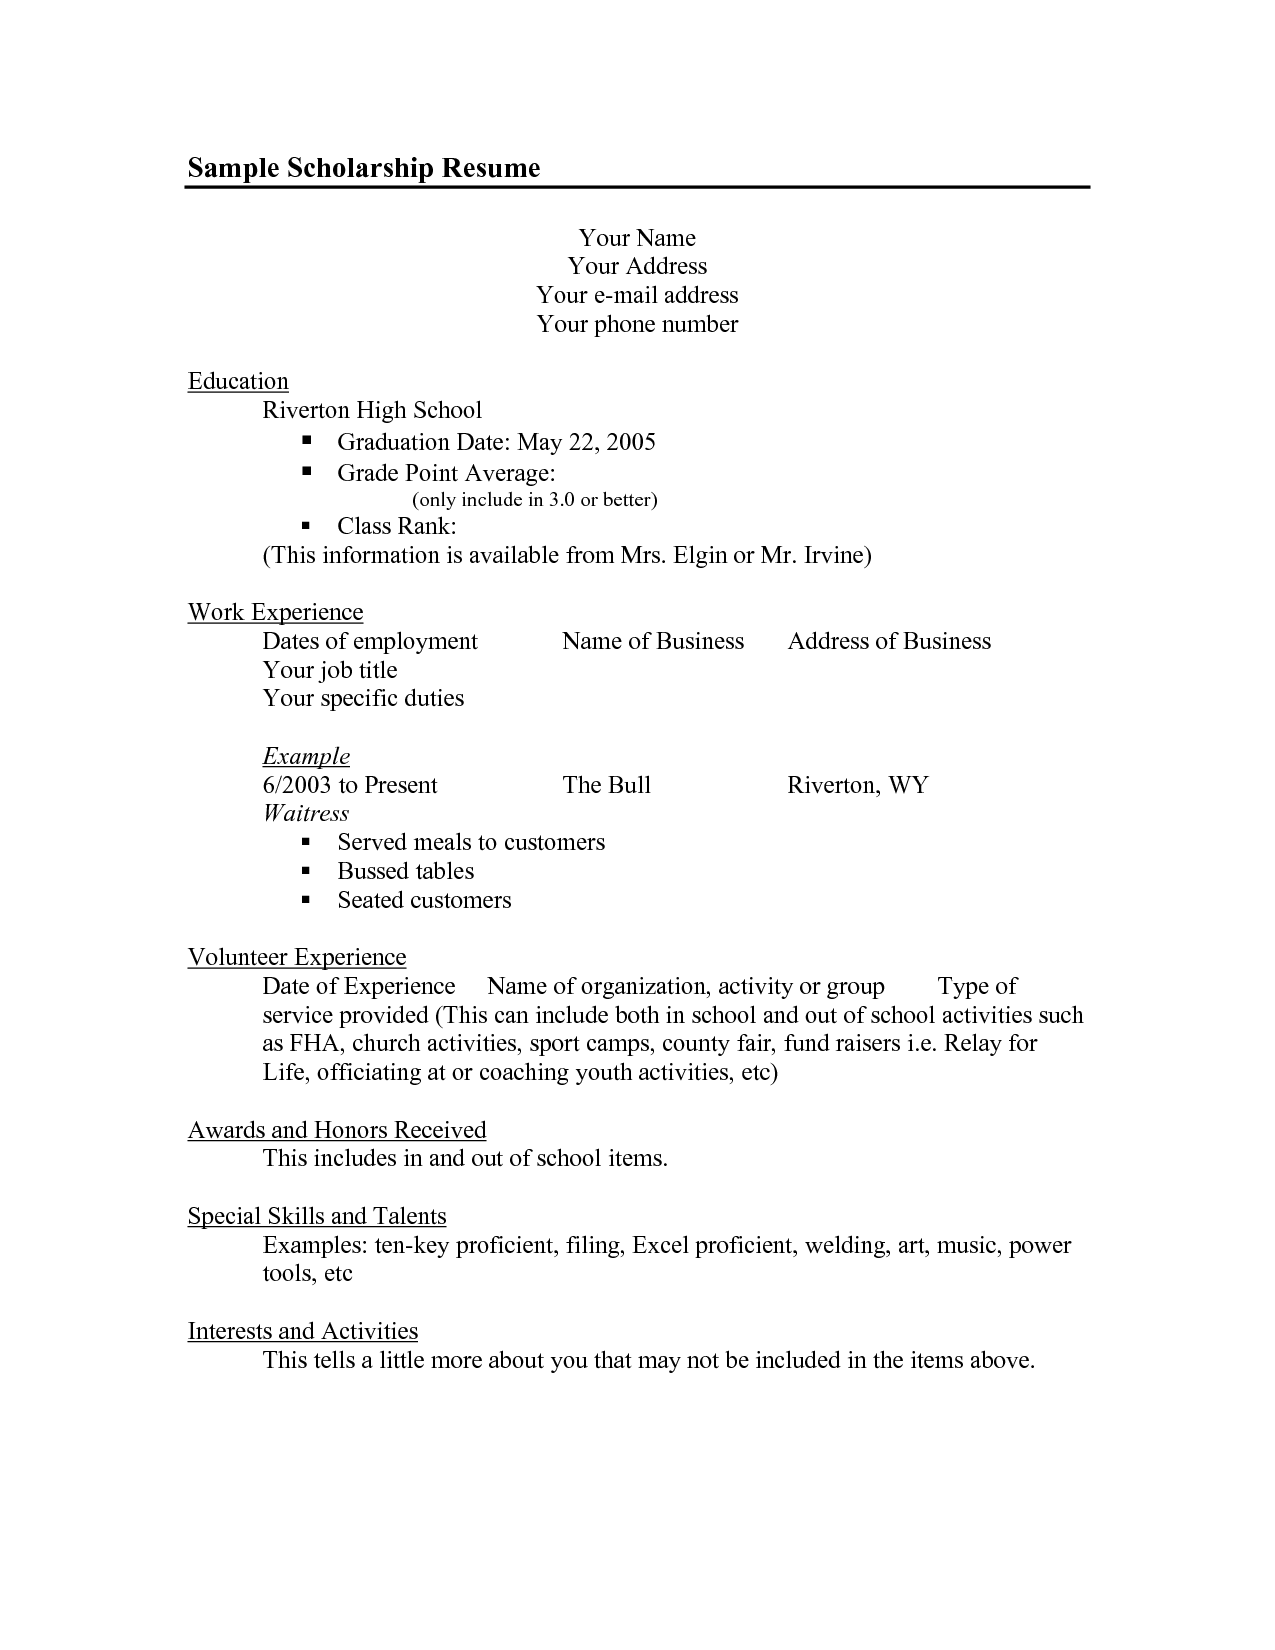 College Student Resume Examples Scholarship Resume Templates  Sample Scholarship Resume